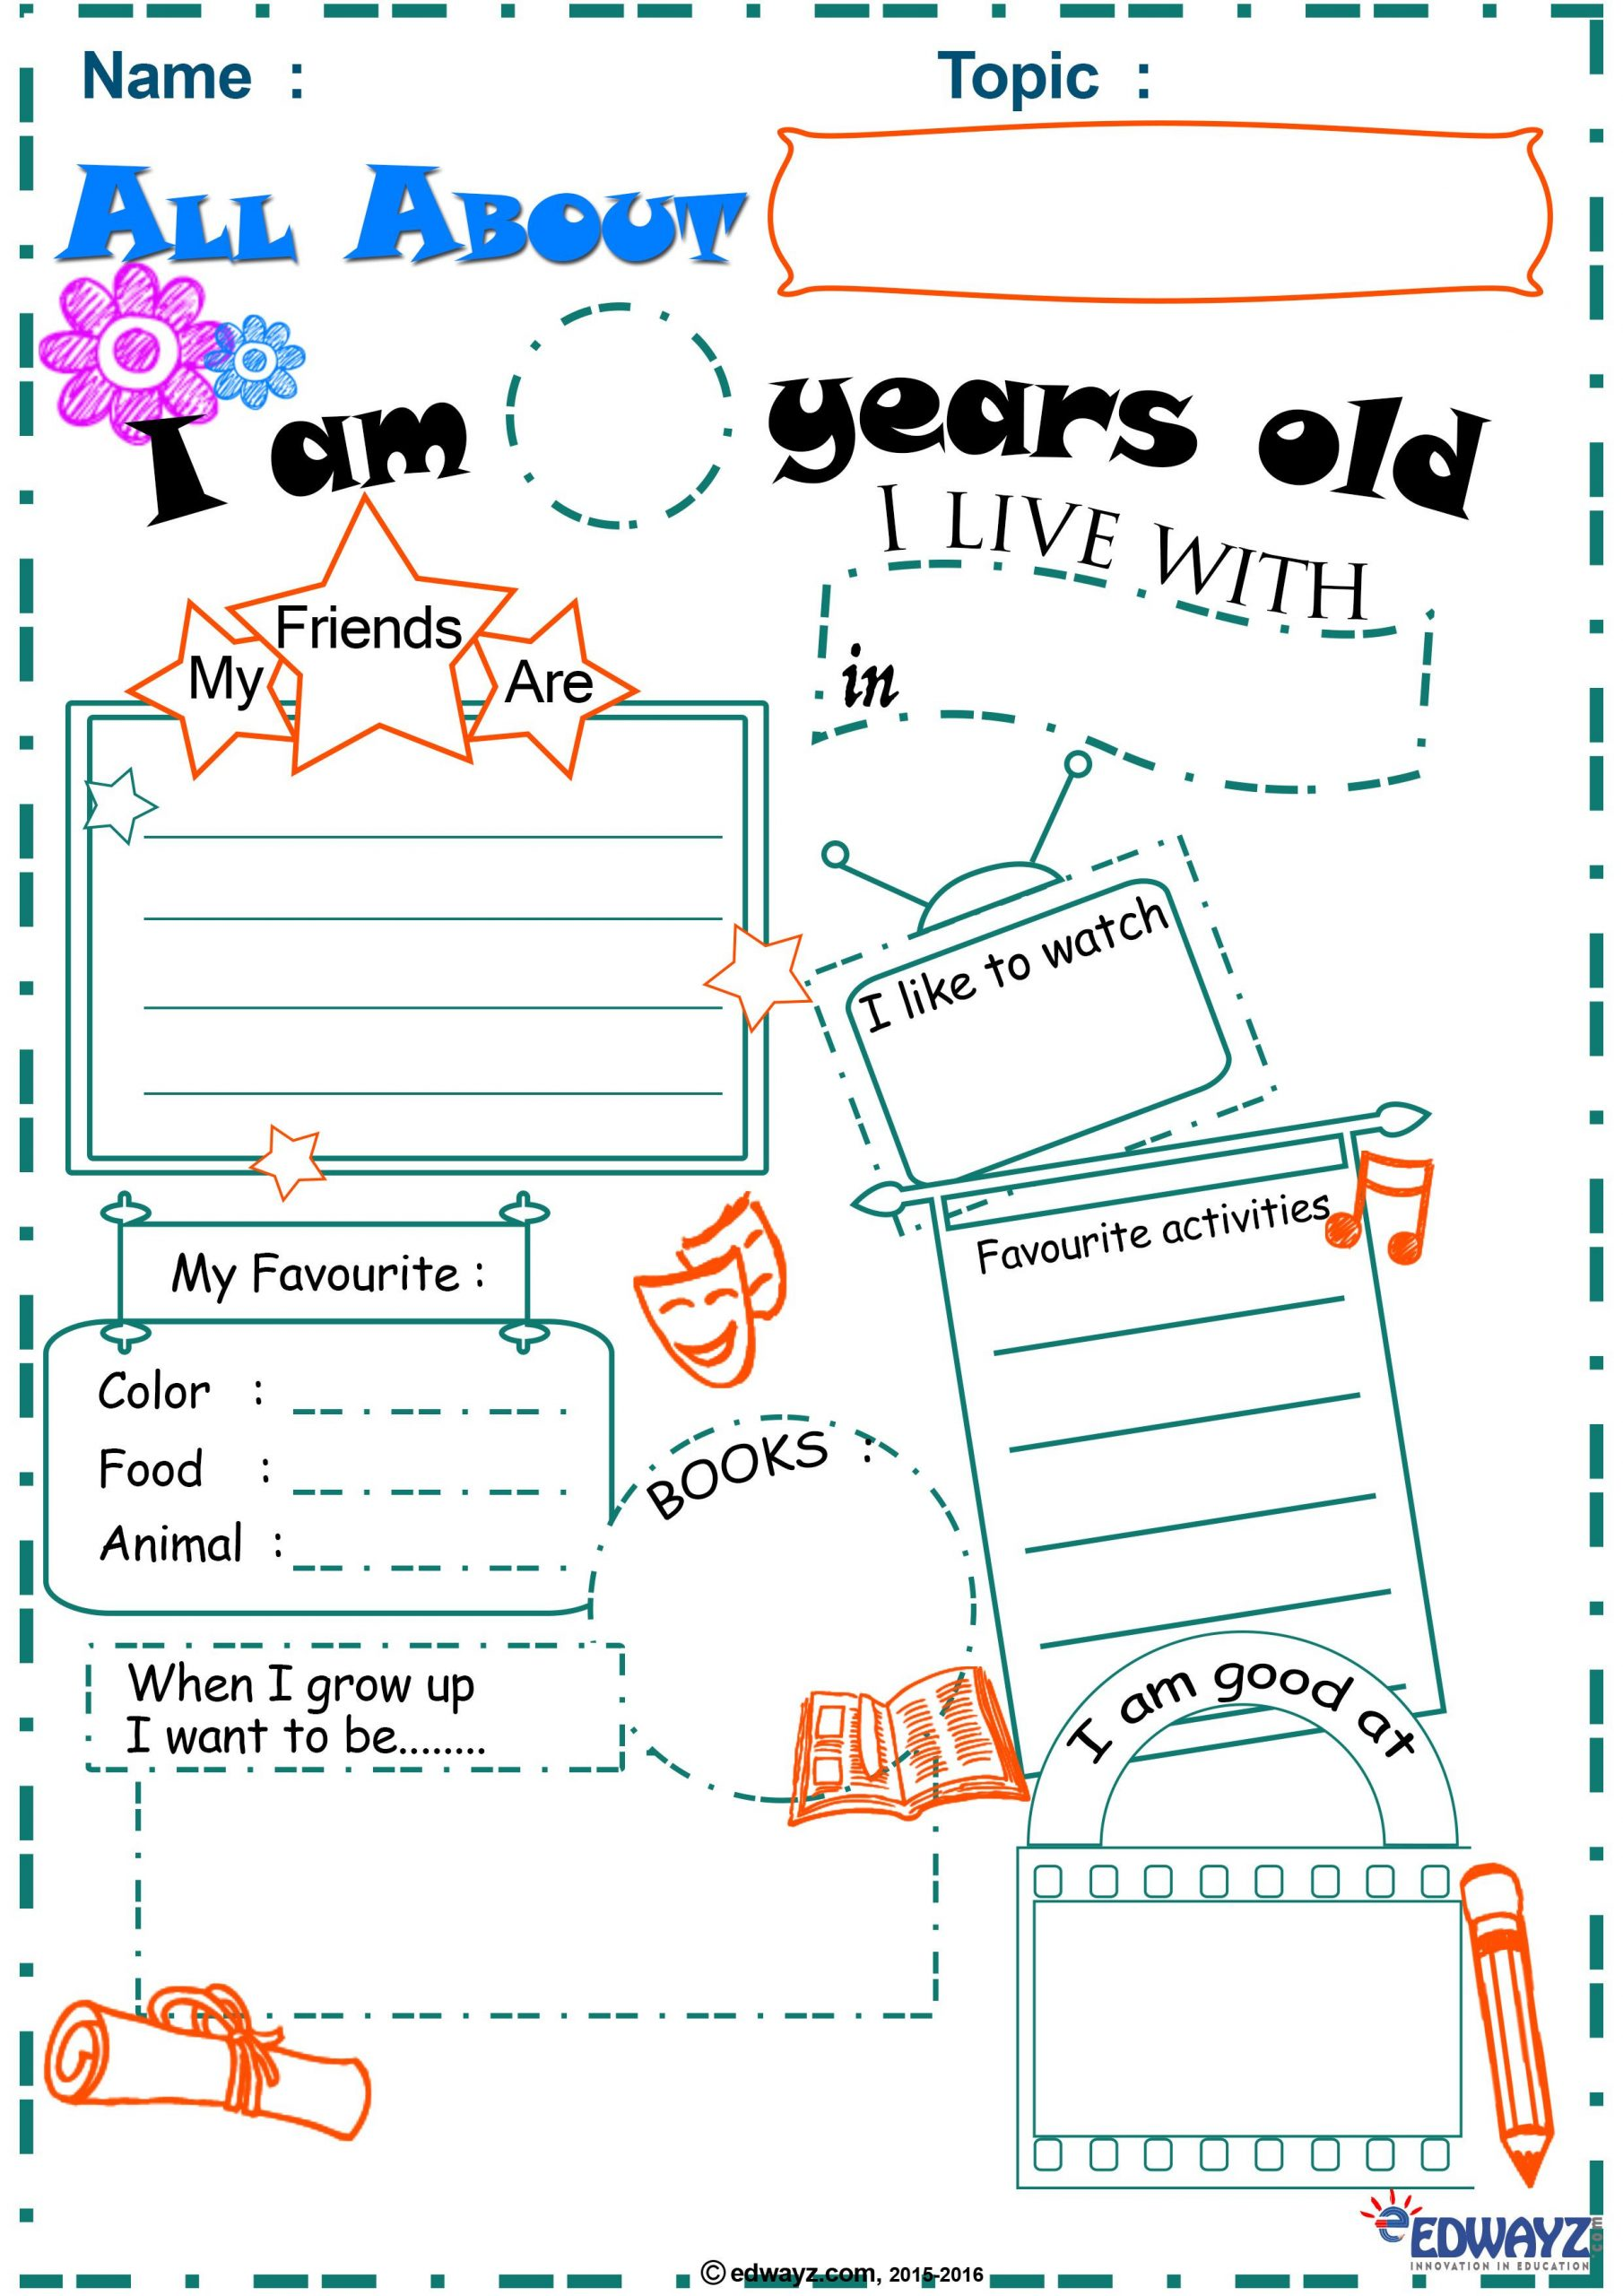 All about you worksheets Primarykids